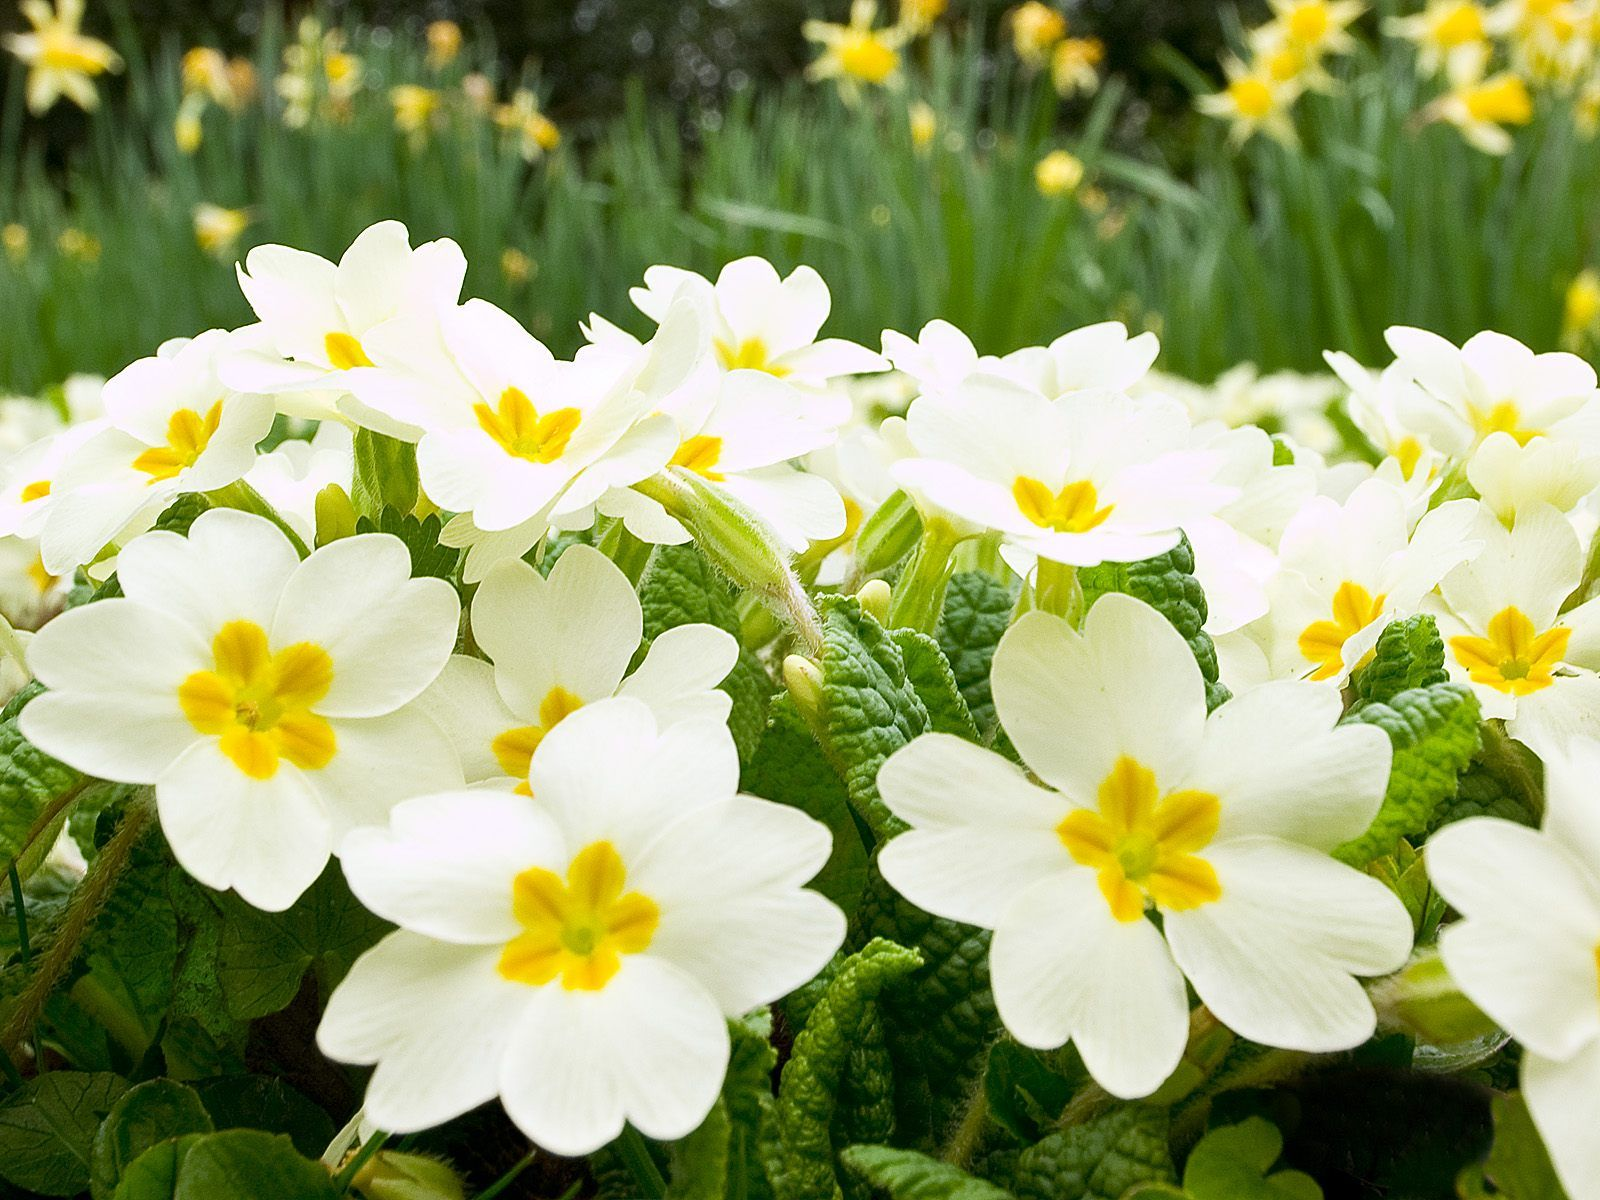 Images of spring flowers and wallpapers download beautiful images of spring flowers and wallpapers download izmirmasajfo